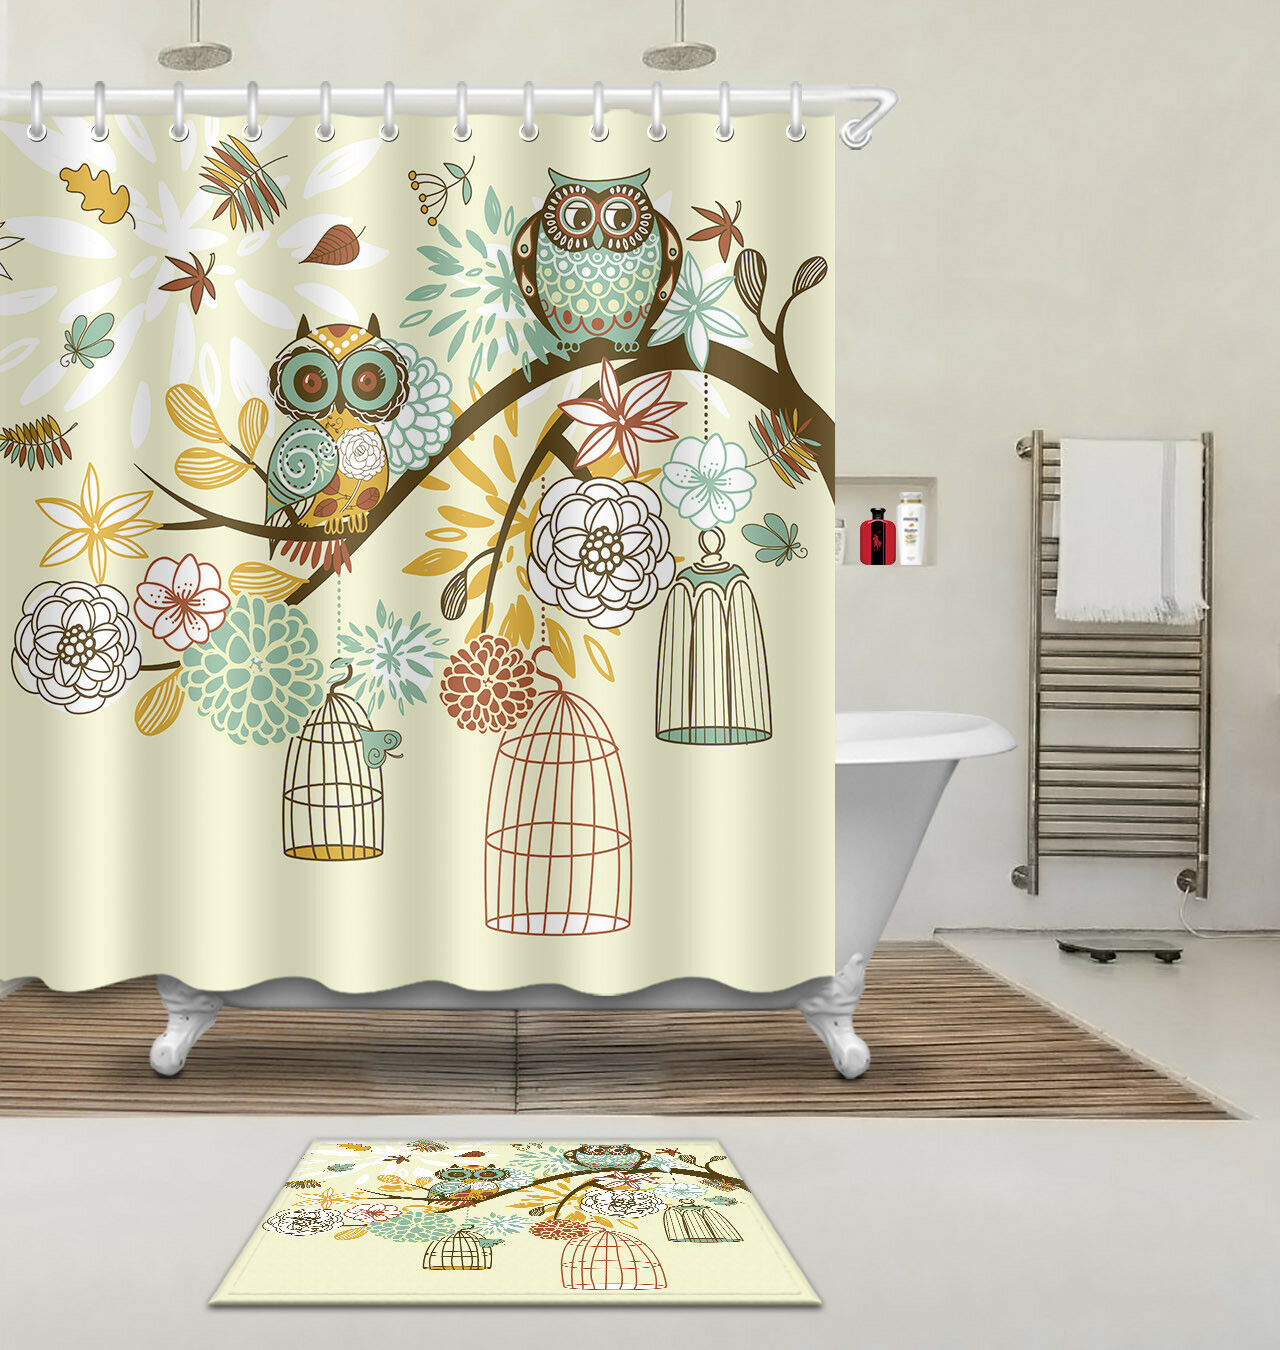 Shower Curtain Hooks Owl On The Branch Polyester Waterproof Fabric Bathroom Mat